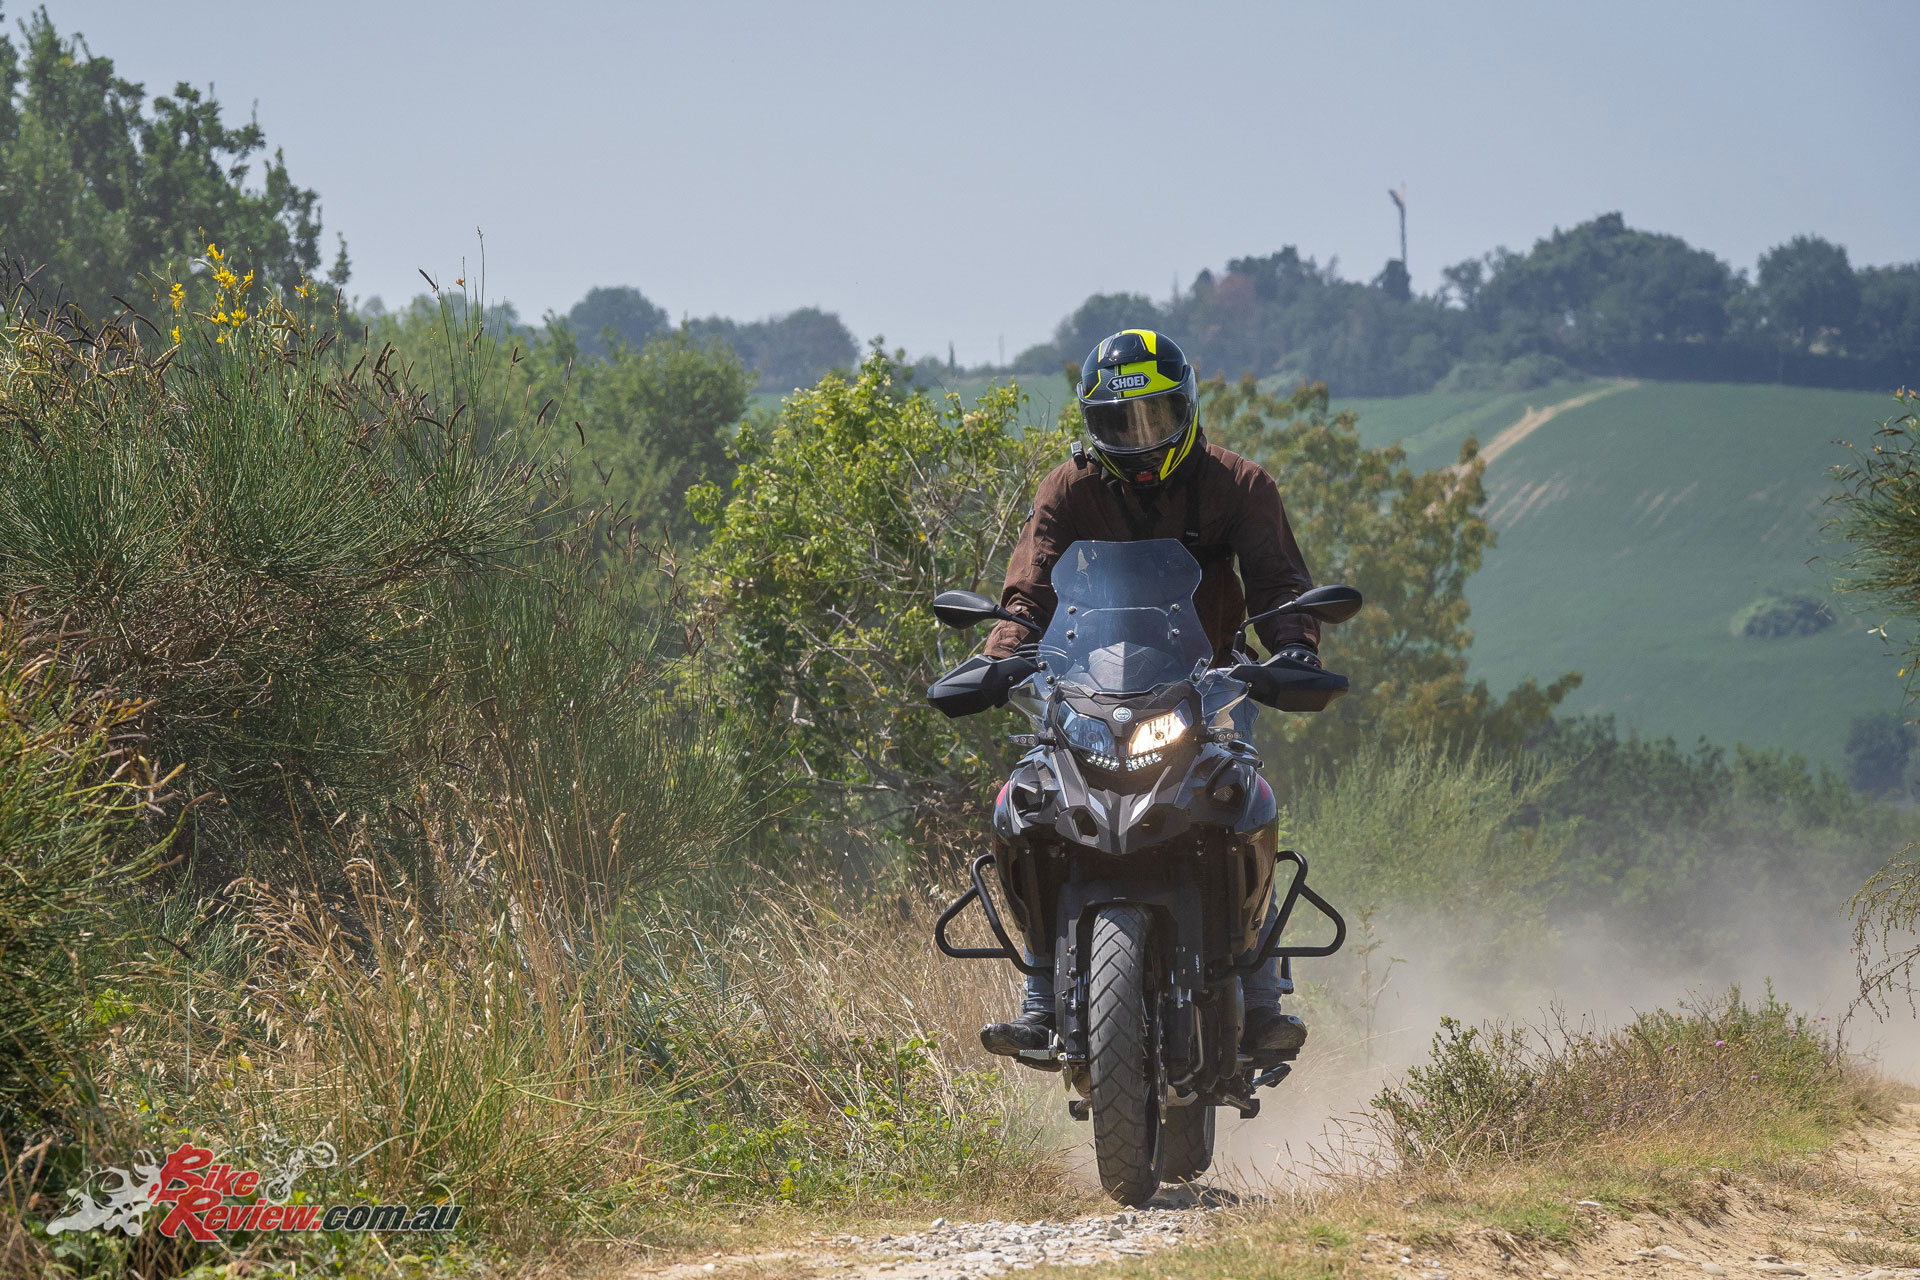 The TRK 502X isn't really presented as a full adventure tourer, instead offering a 'light' adventure experience, with strong touring and commuting abilities.